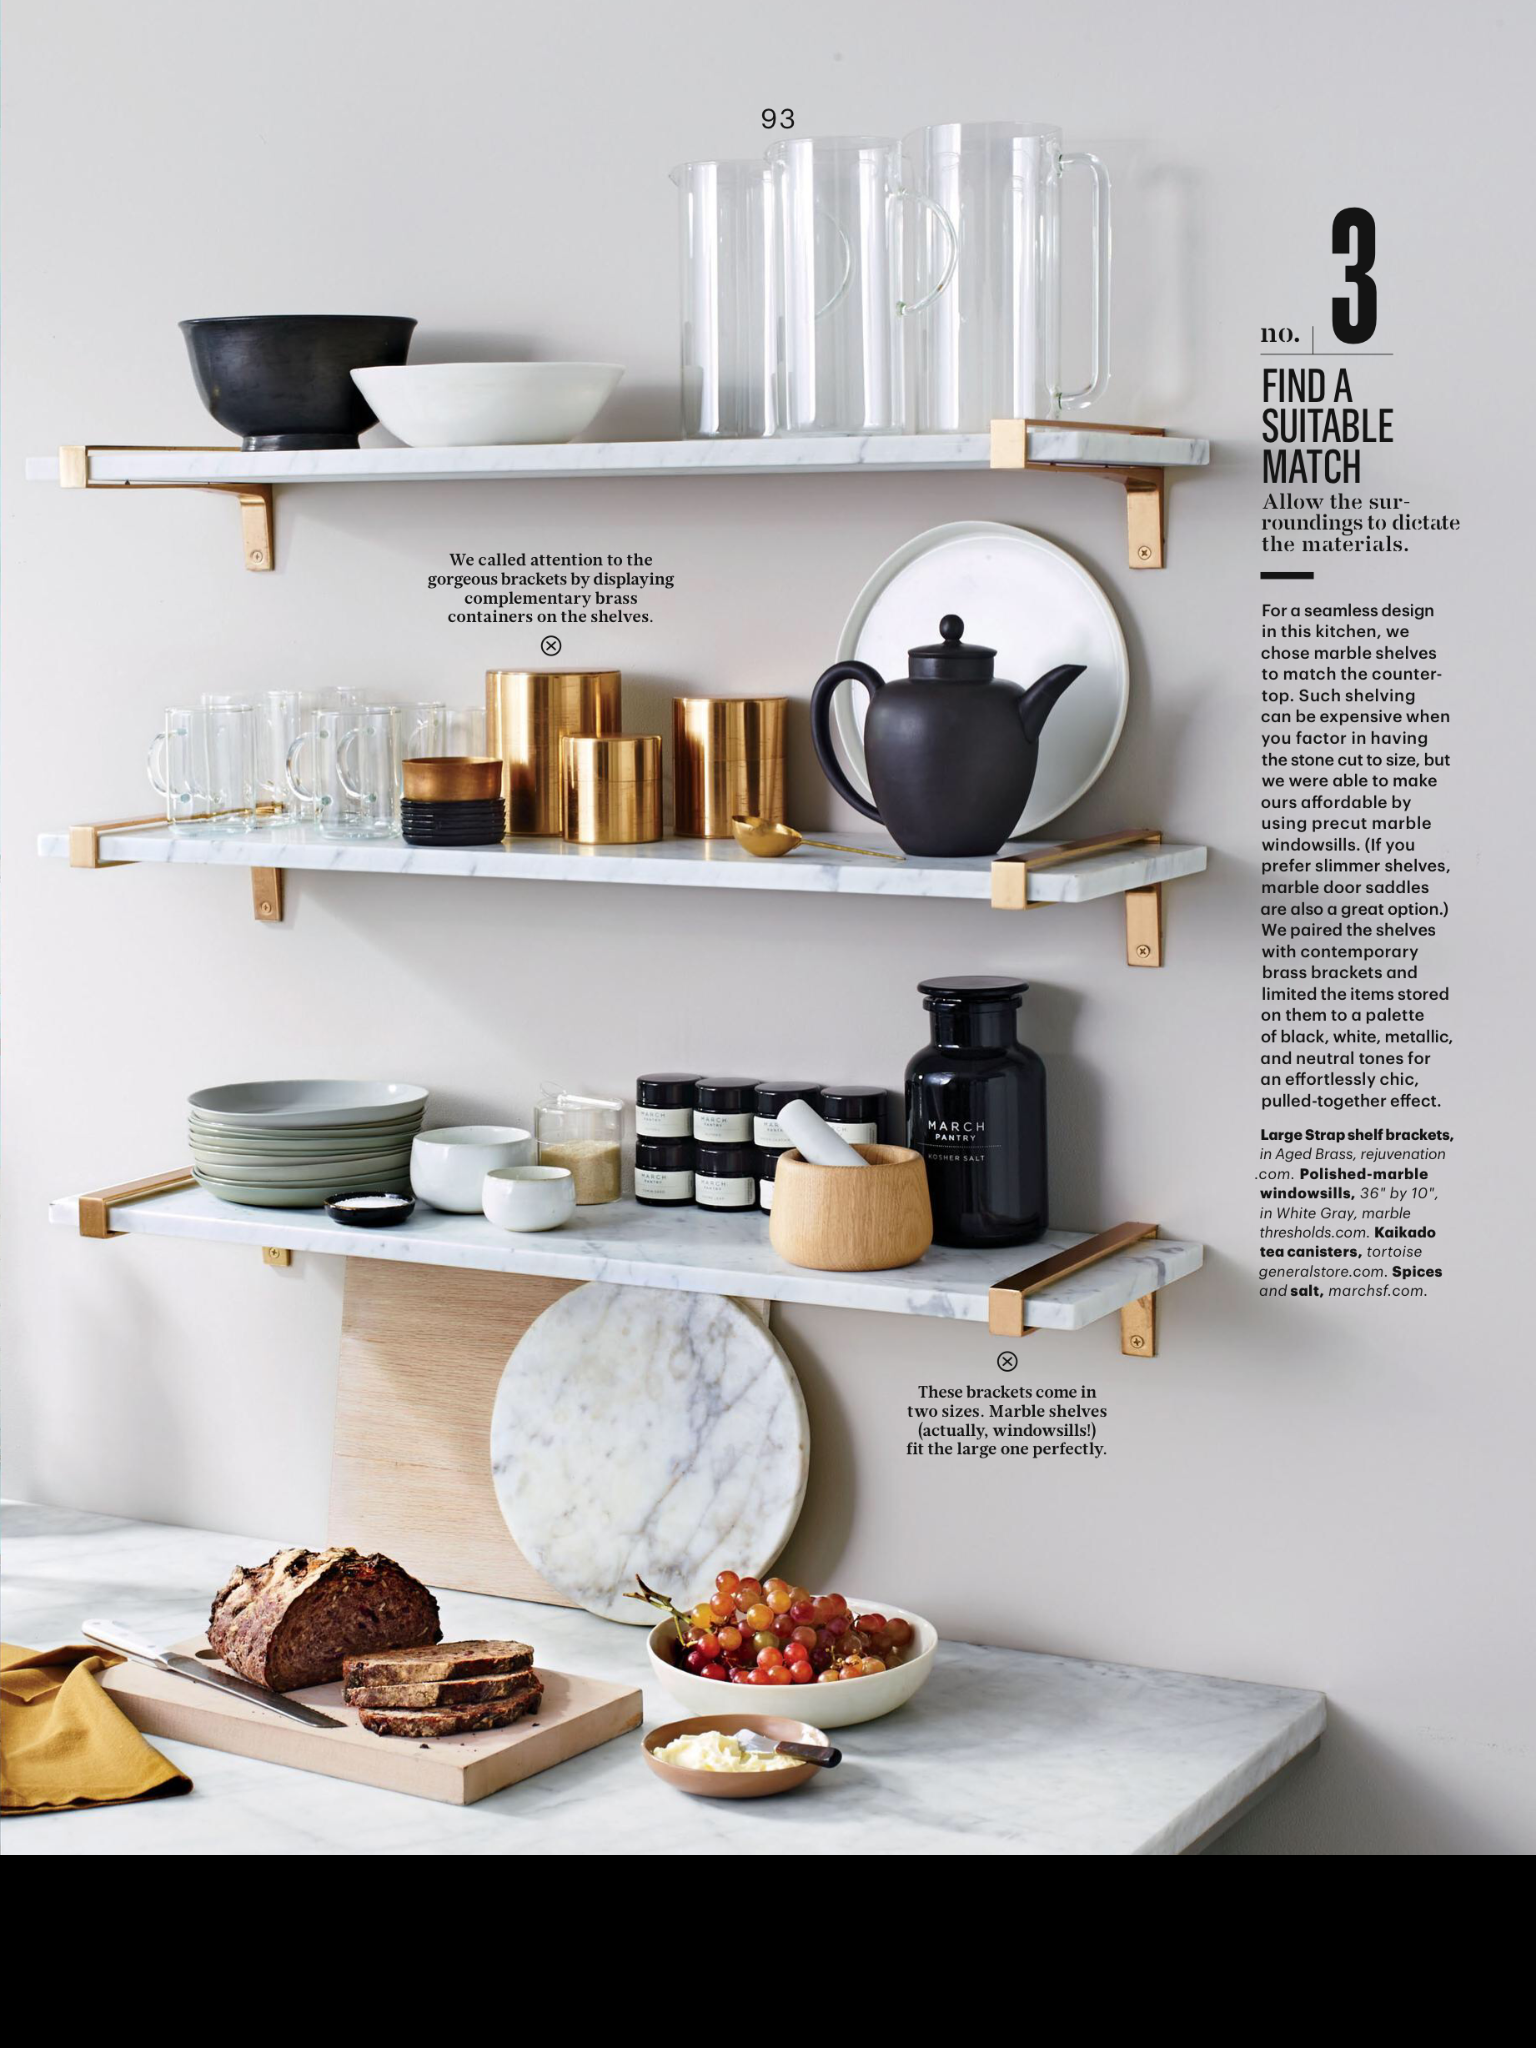 Marble open shelving in the kitchen kitchen pinterest open